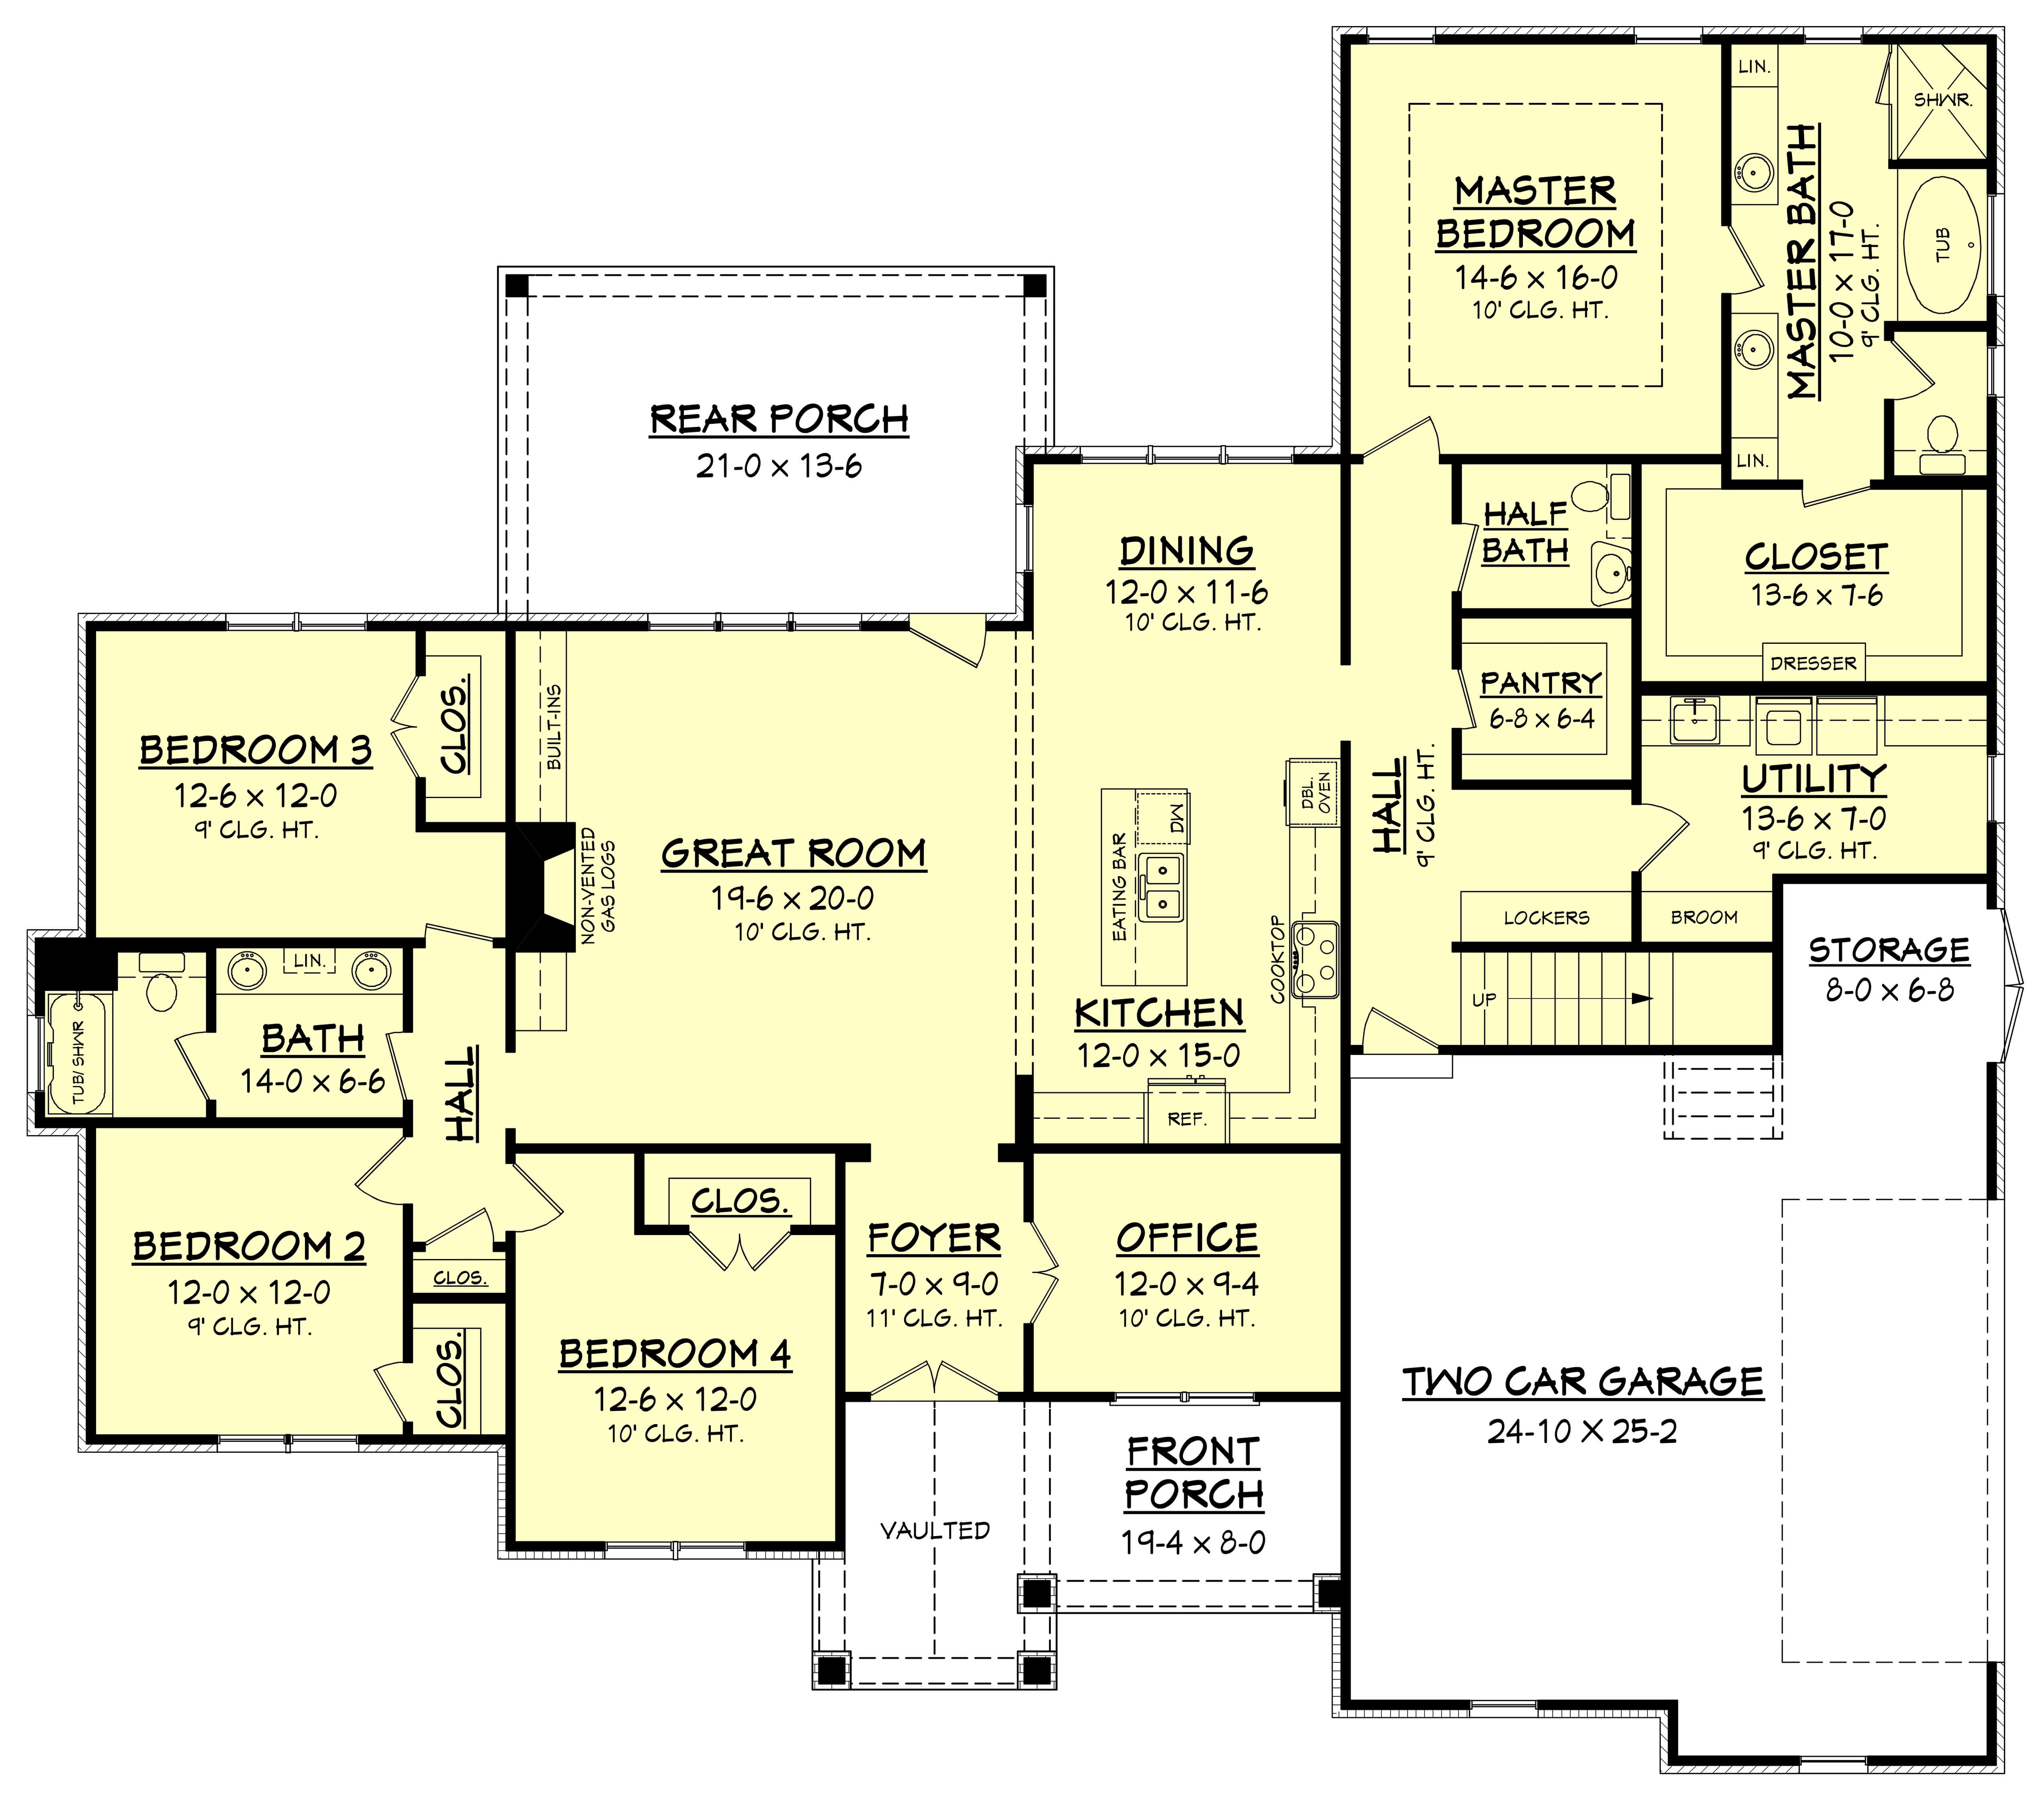 4 Bedrm 2641 Sq Ft Country House Plan 1421170